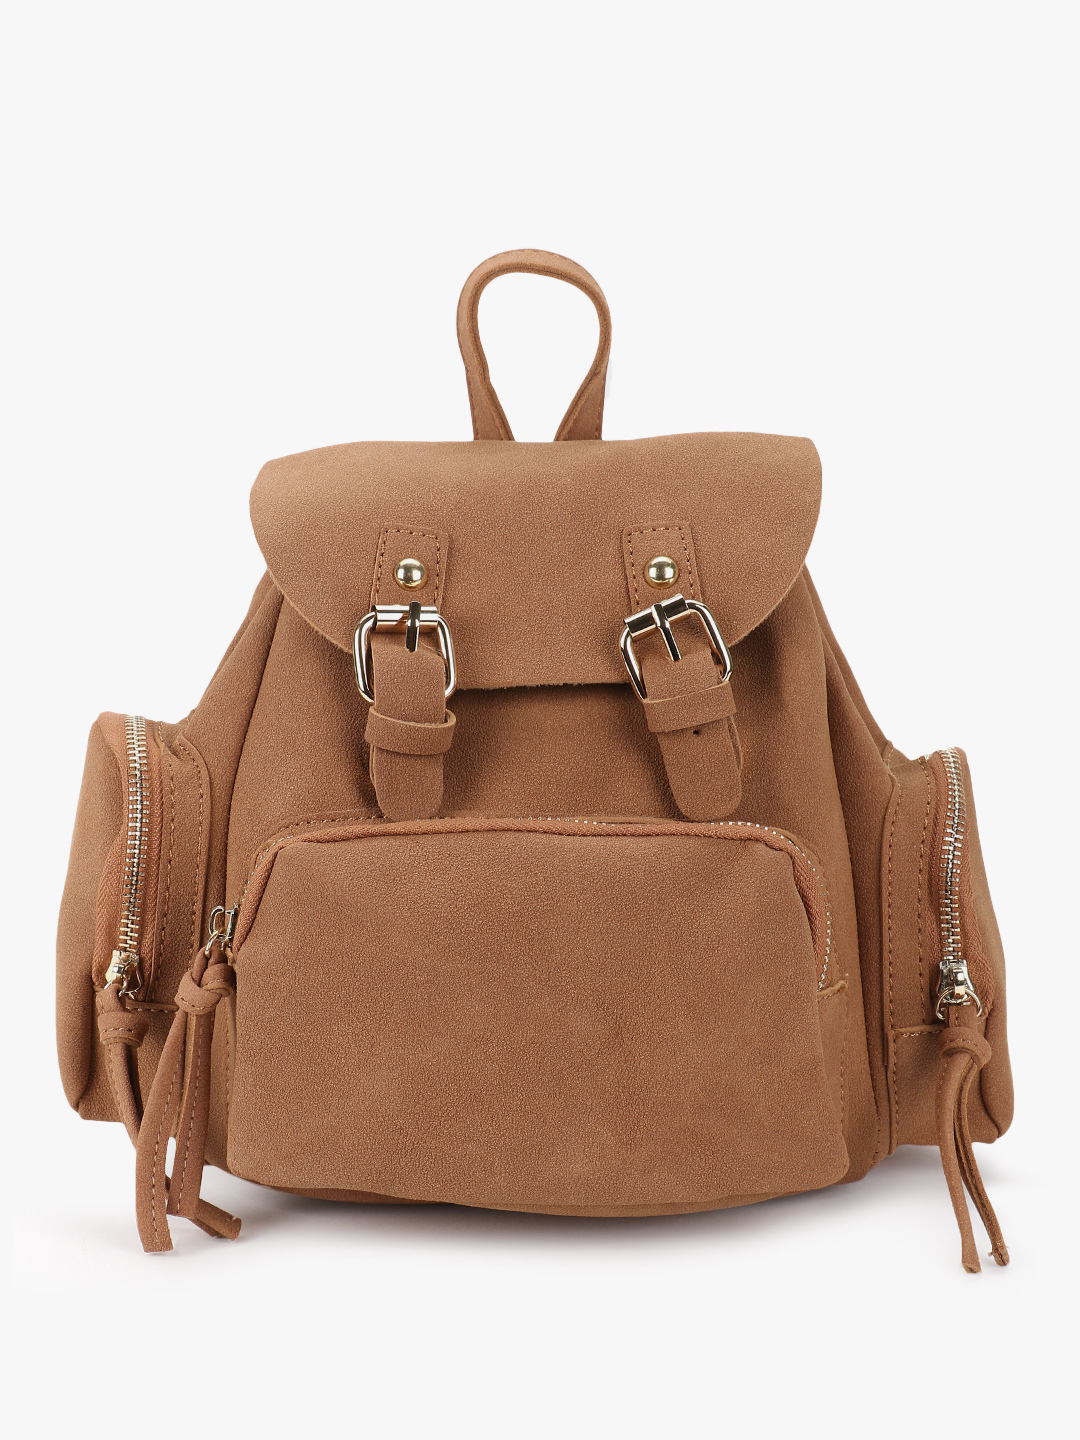 Origami Lily Tan Suede Backpack 1